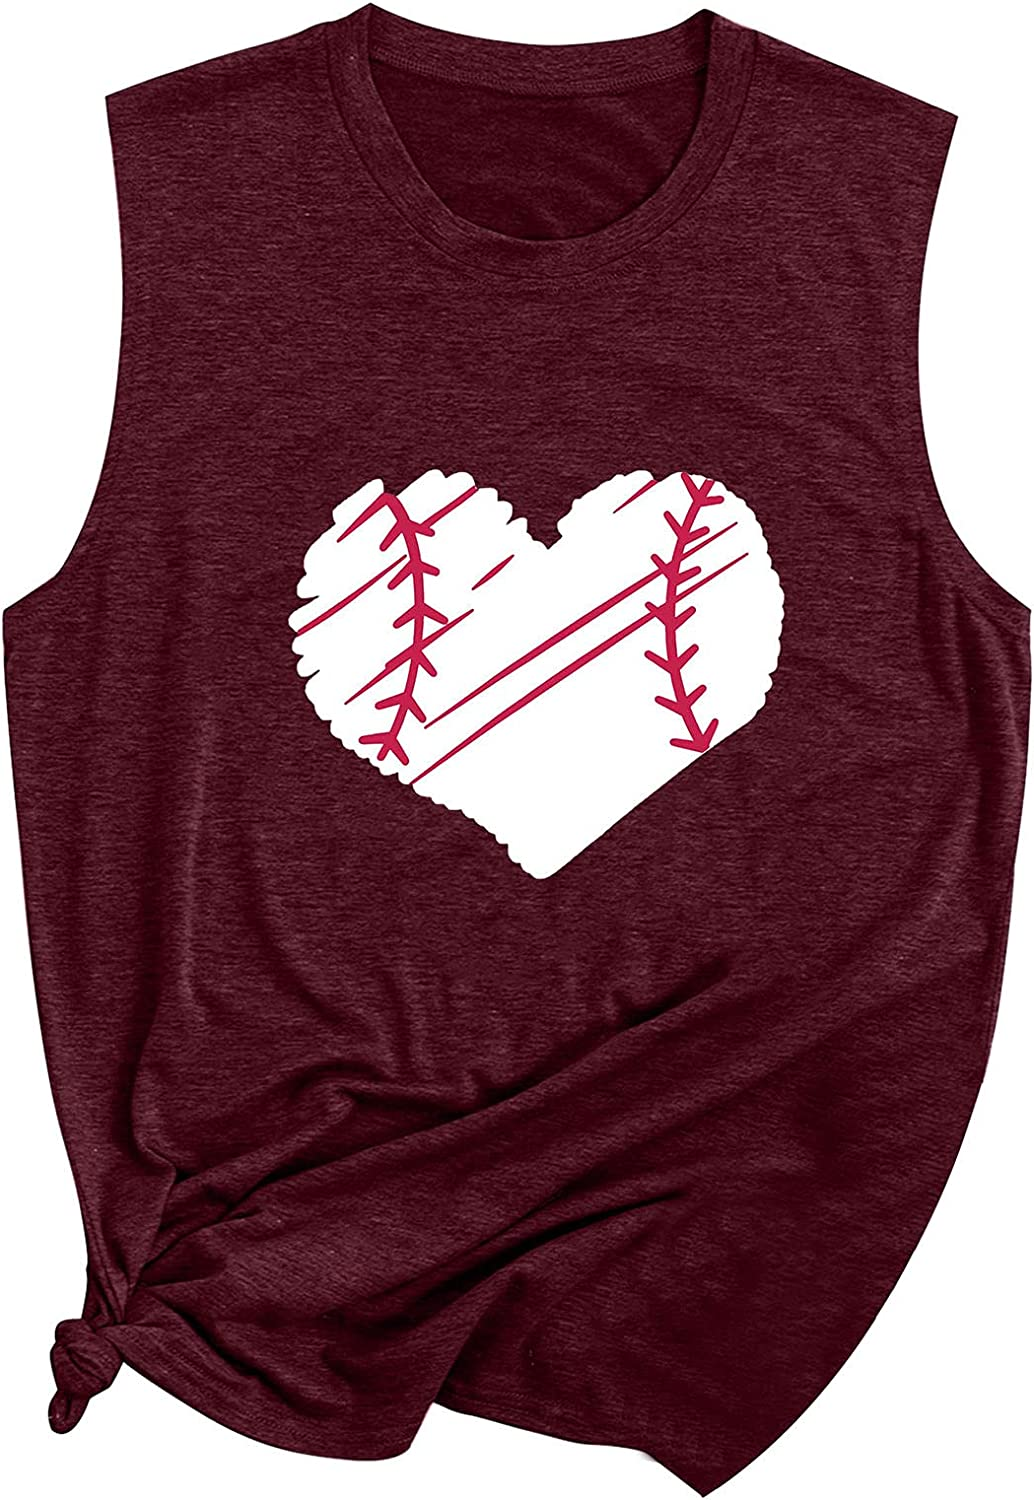 Beppter Women's Baseball Mom Heart Print Funny Tank Top Casual Vest Cami T-Shirt Tee Summer Graphic Tee Shirts(Wine,XX-Large)